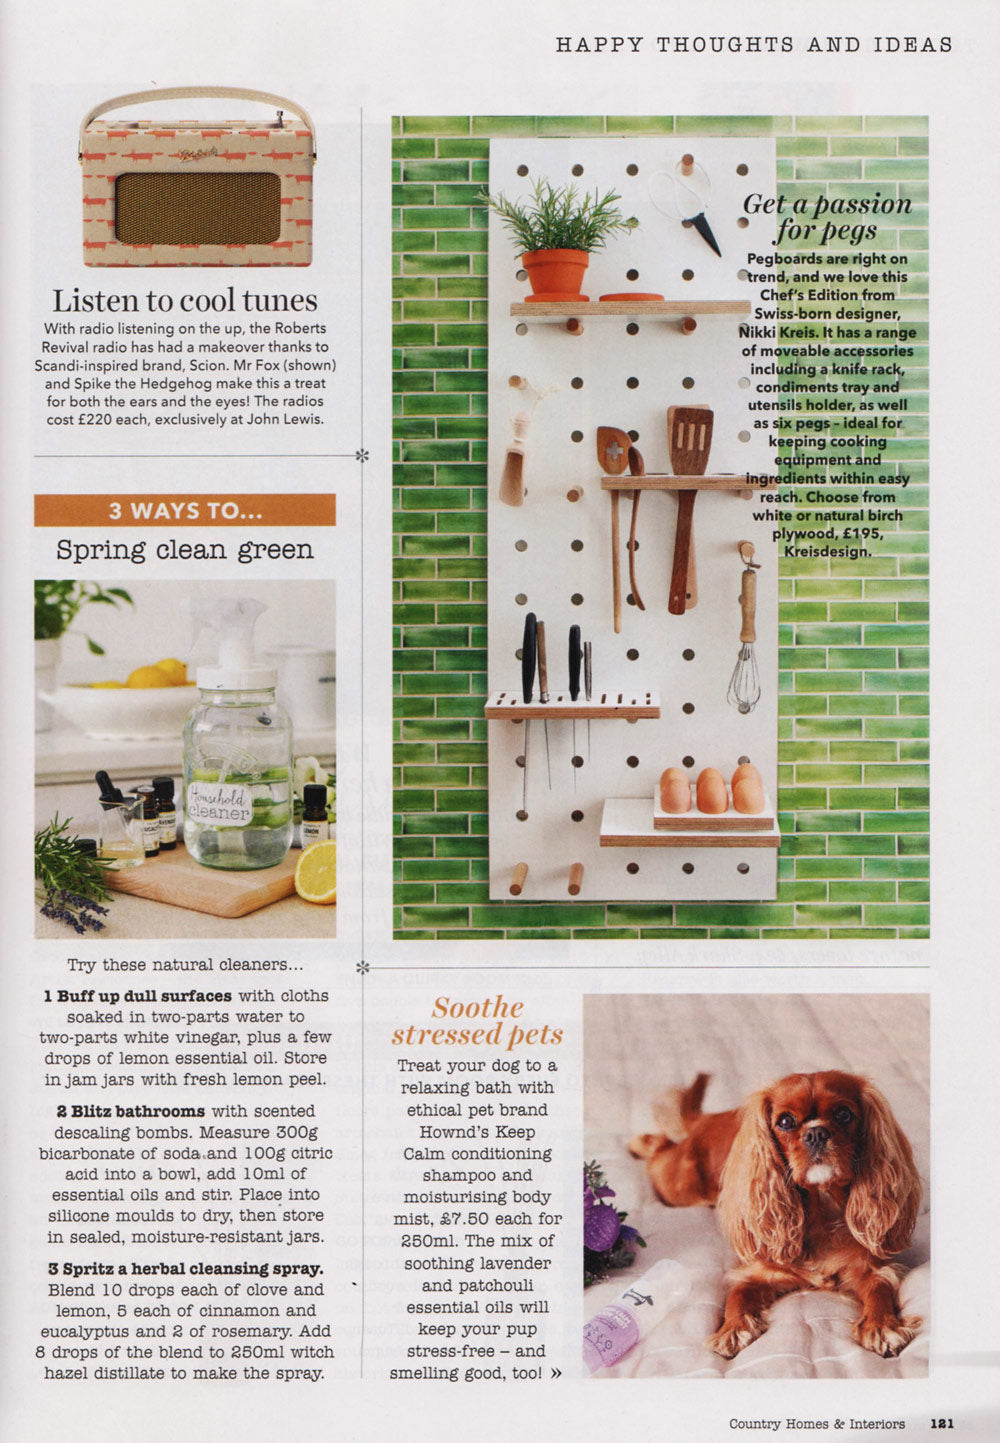 Country Homes & Interiors featuring Chef's Edition Pegboard